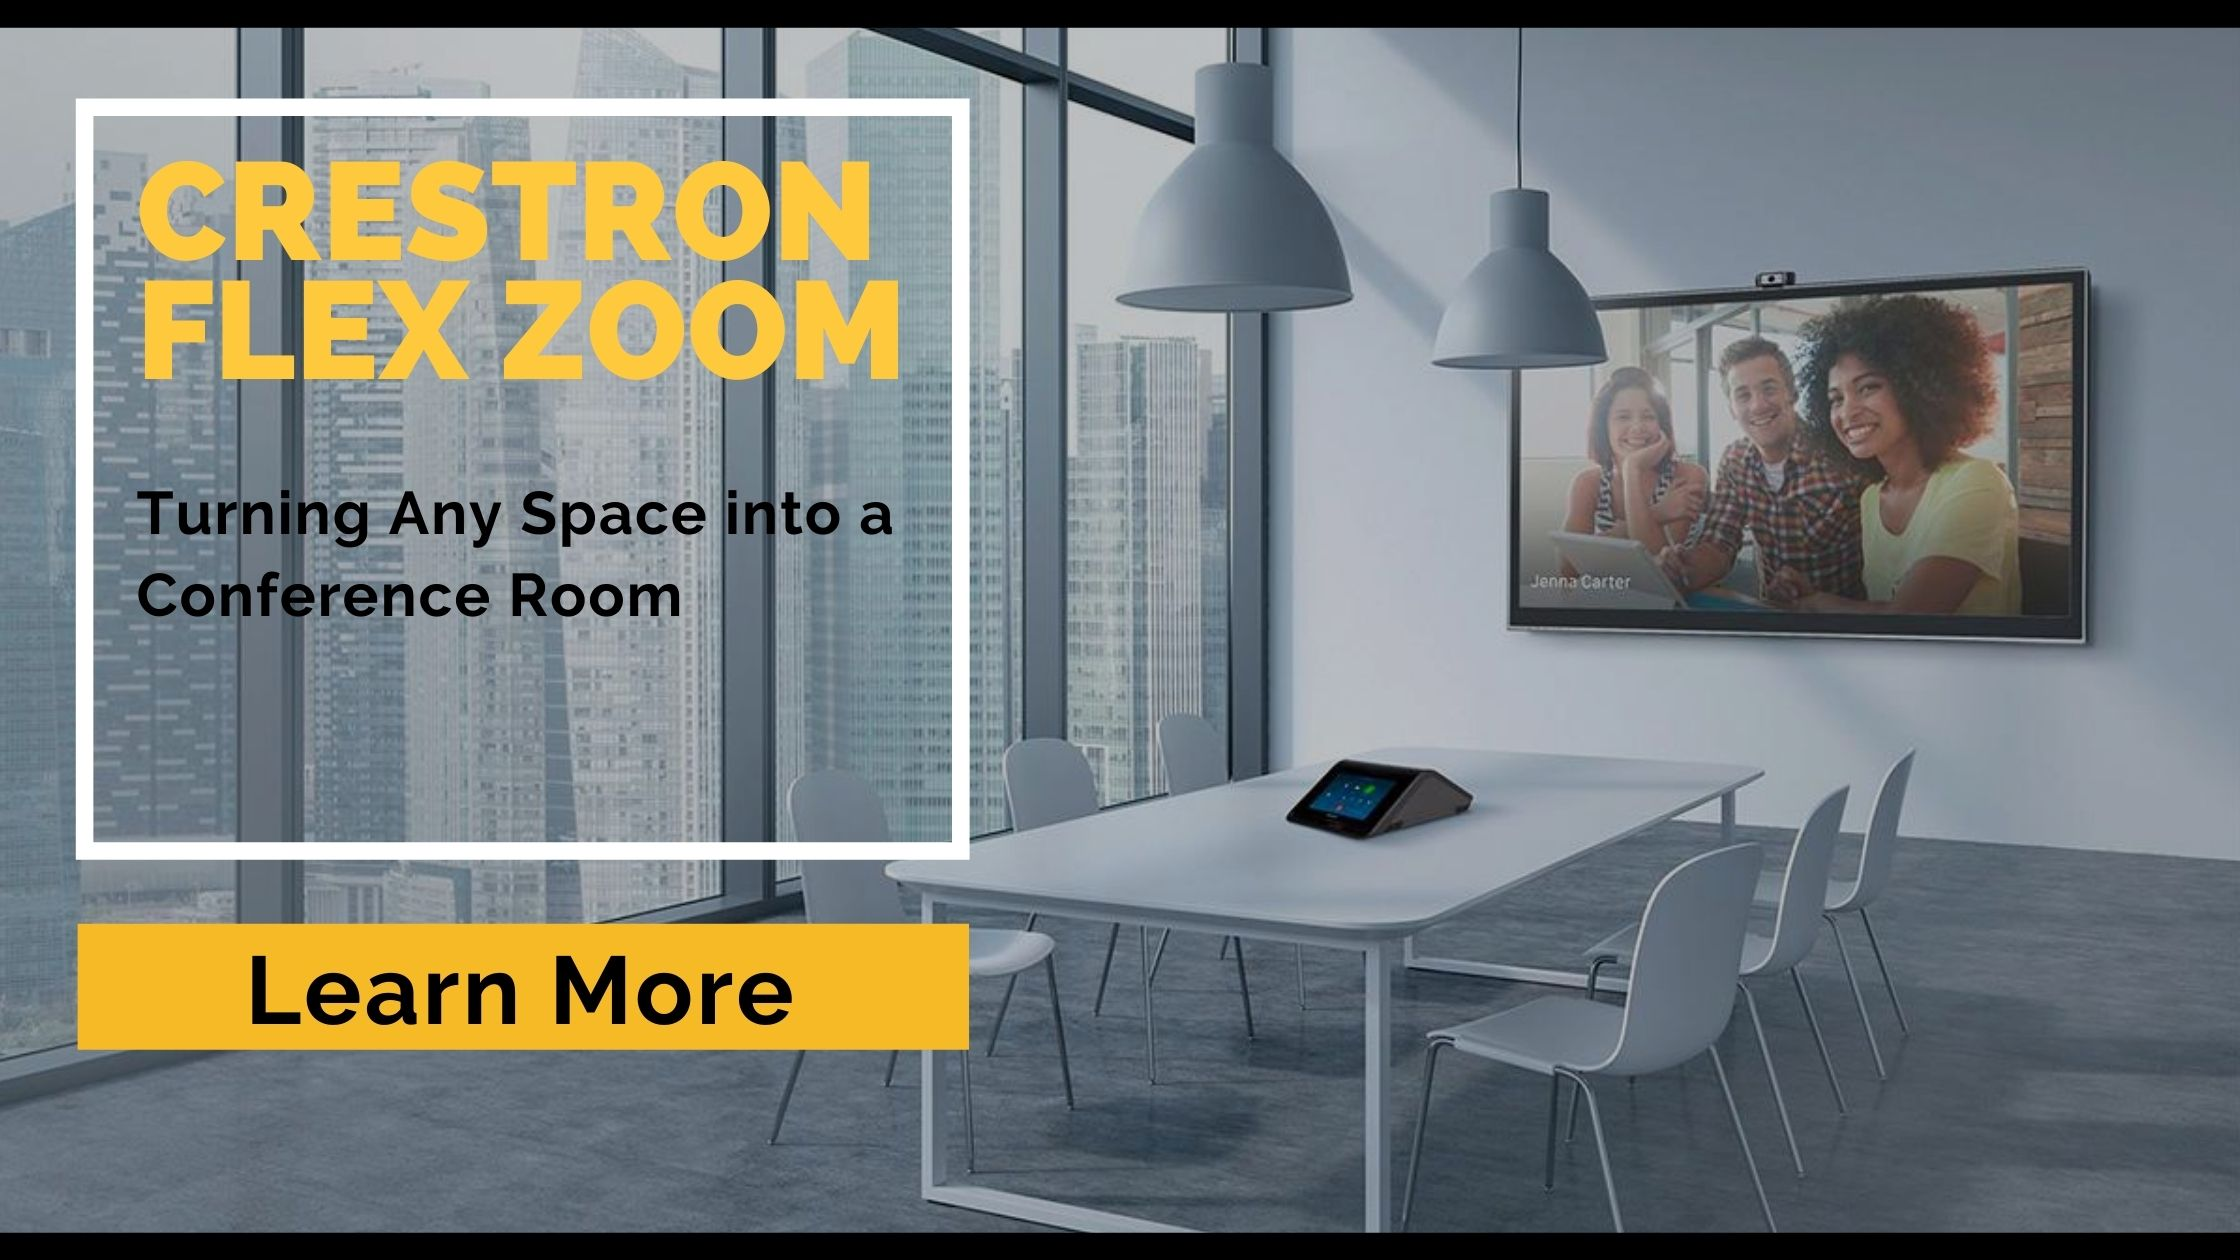 Crestron Flex Zoom: Turning Any Space into a Conference Room